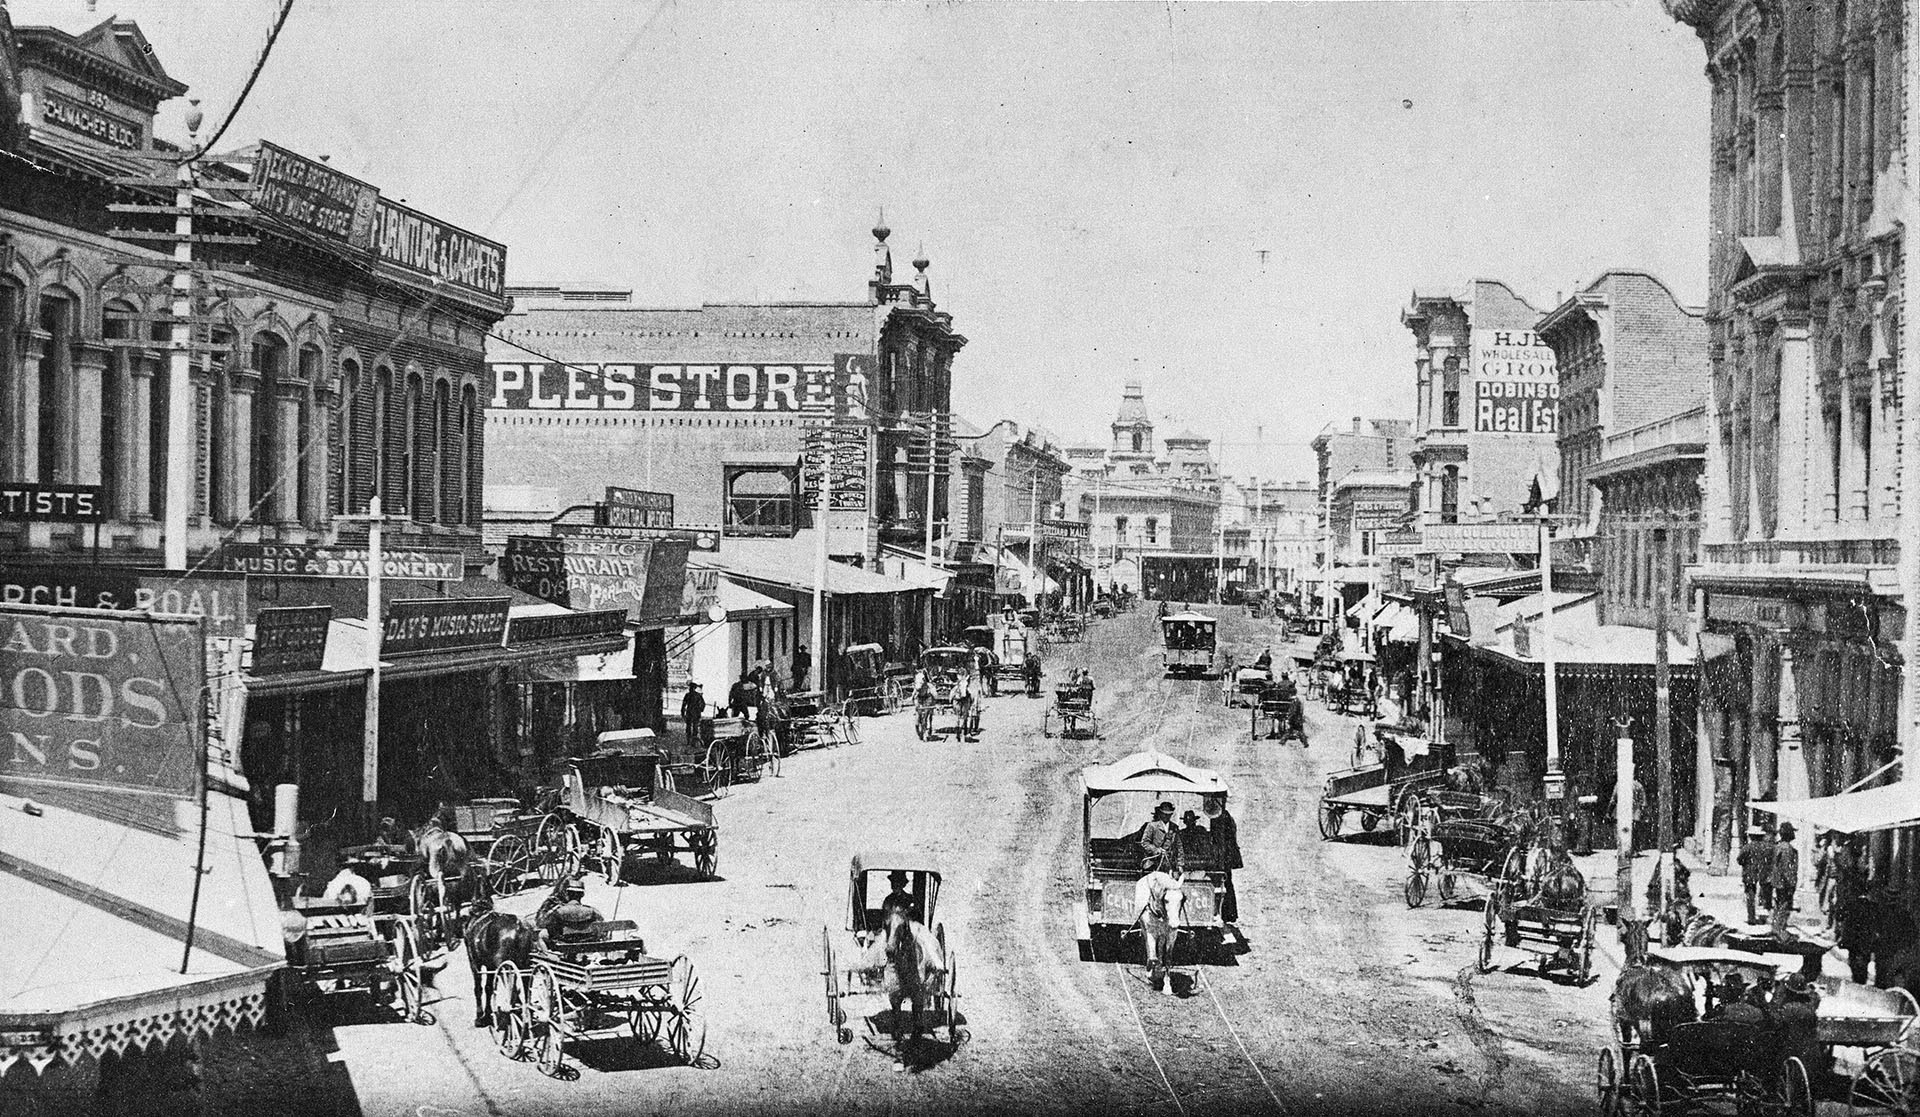 Horse-drawn buggies, carts, wagons, and streetcars move down Spring Street in this circa 1884 view. Courtesy of the USC Libraries - California Historical Society Collection.